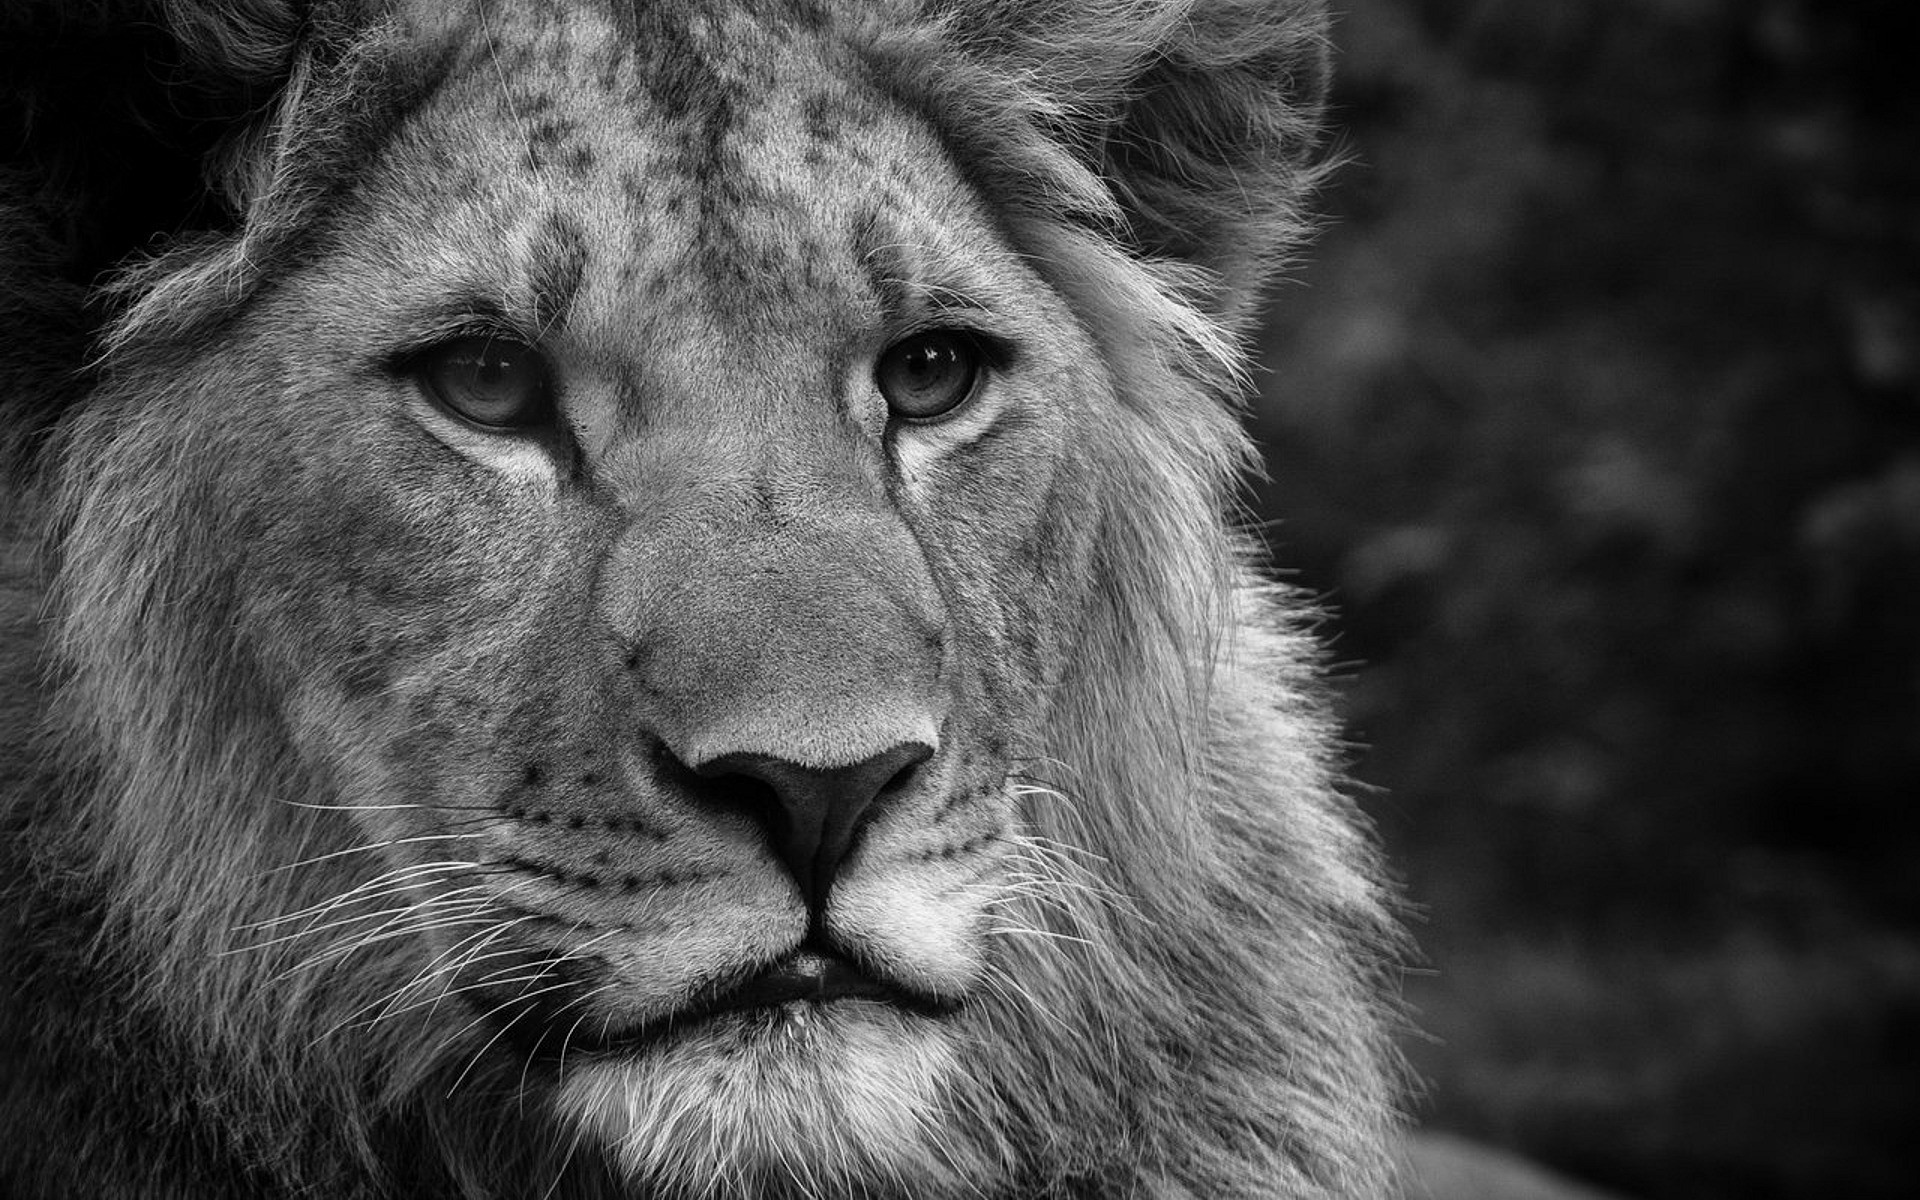 Black And White Wallpaper hd Lion Lions Black And White Photos 1920x1200